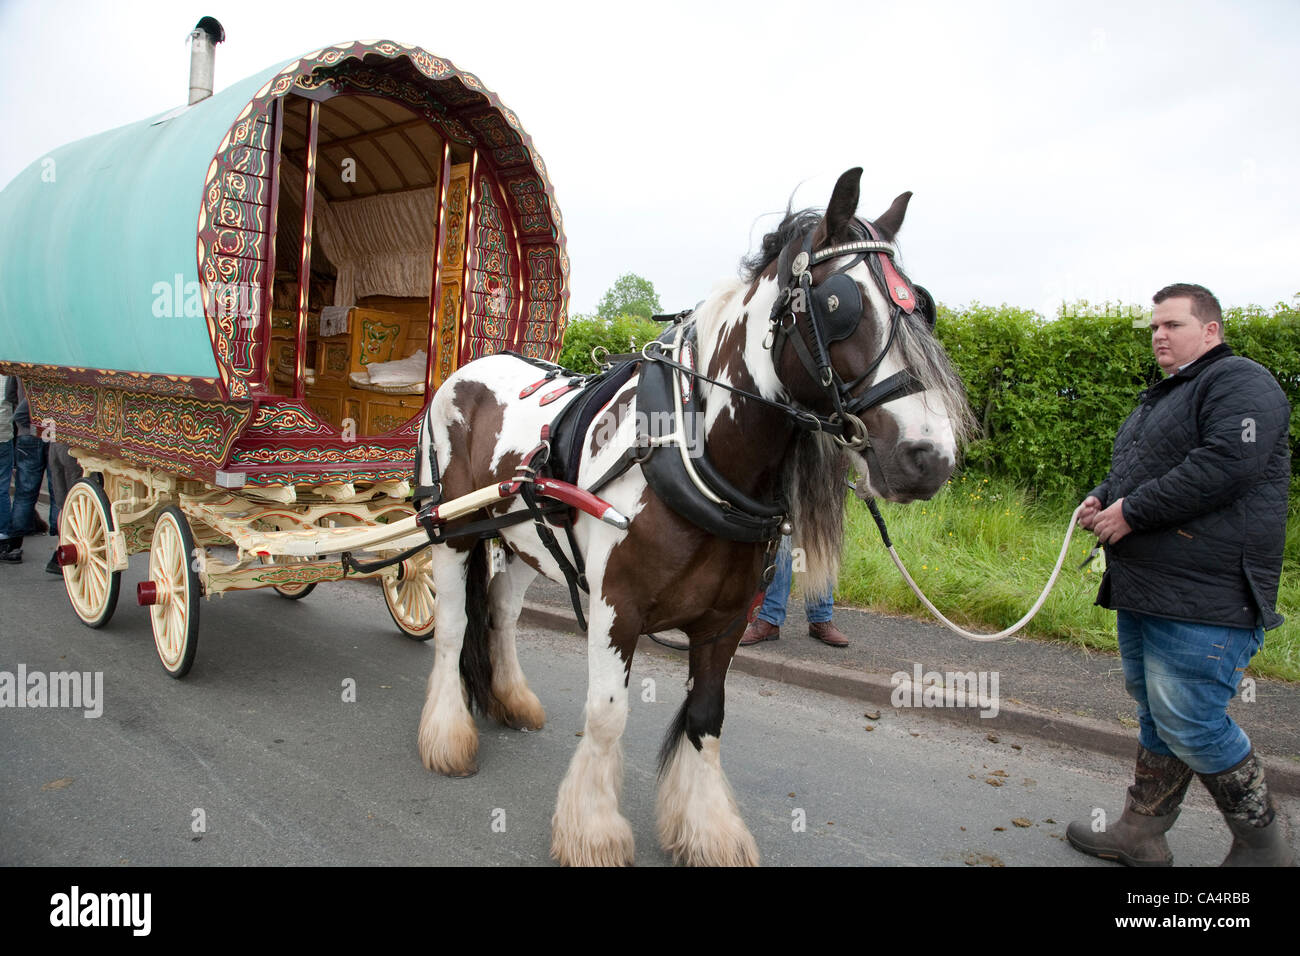 Thursday 7th June 2012 at Appleby, Cumbria, England, UK. Horse drawn bow-top wagons arrive from all over the UK Stock Photo